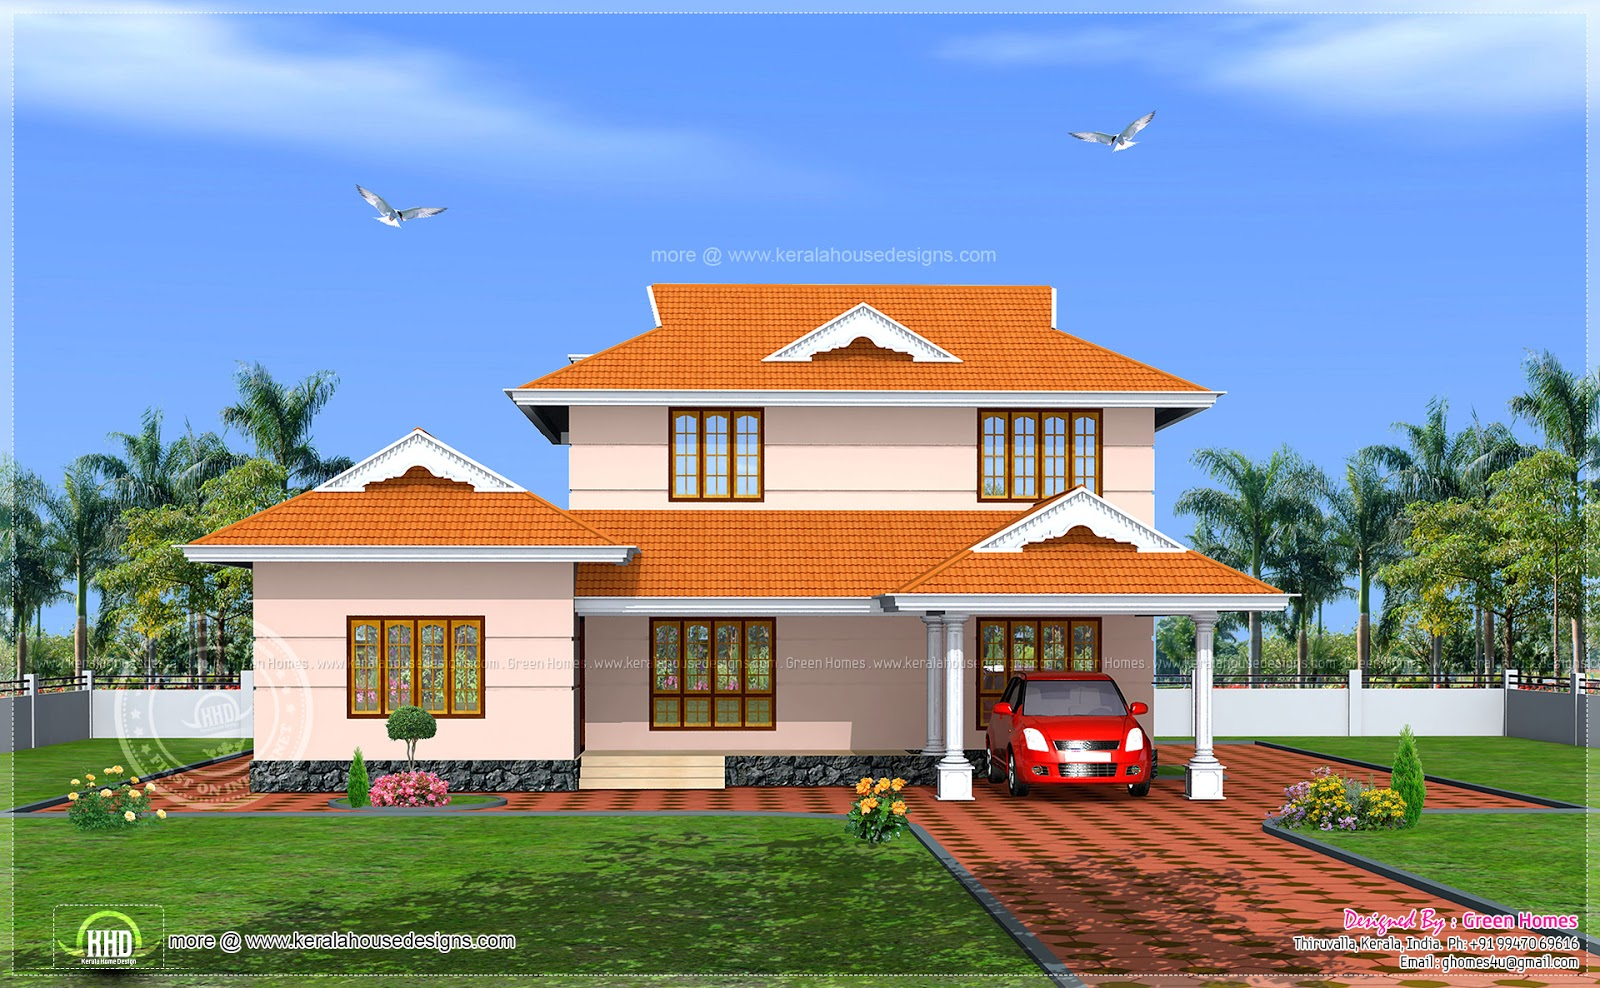 Home design kerala model house q for Homes models and plans